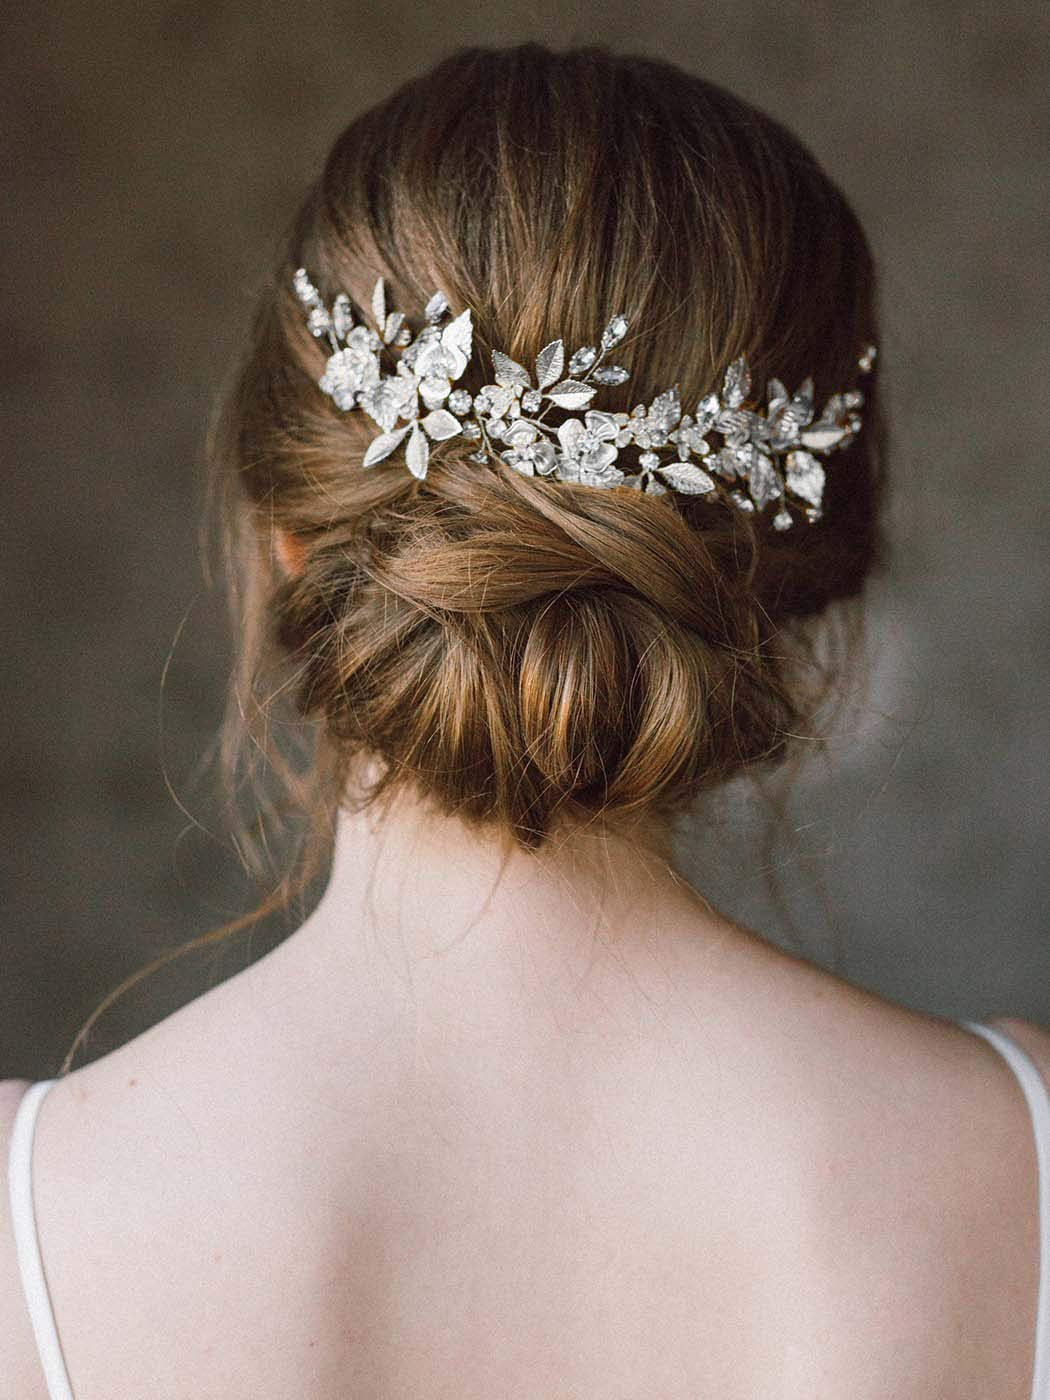 Gold Leaf Hair Accessory Water Lily Crystal Hair Prong Gold Leaf Clip Rose gold Leaves Jewelry Silver Hair Pin Bridal Floral Hair Fork